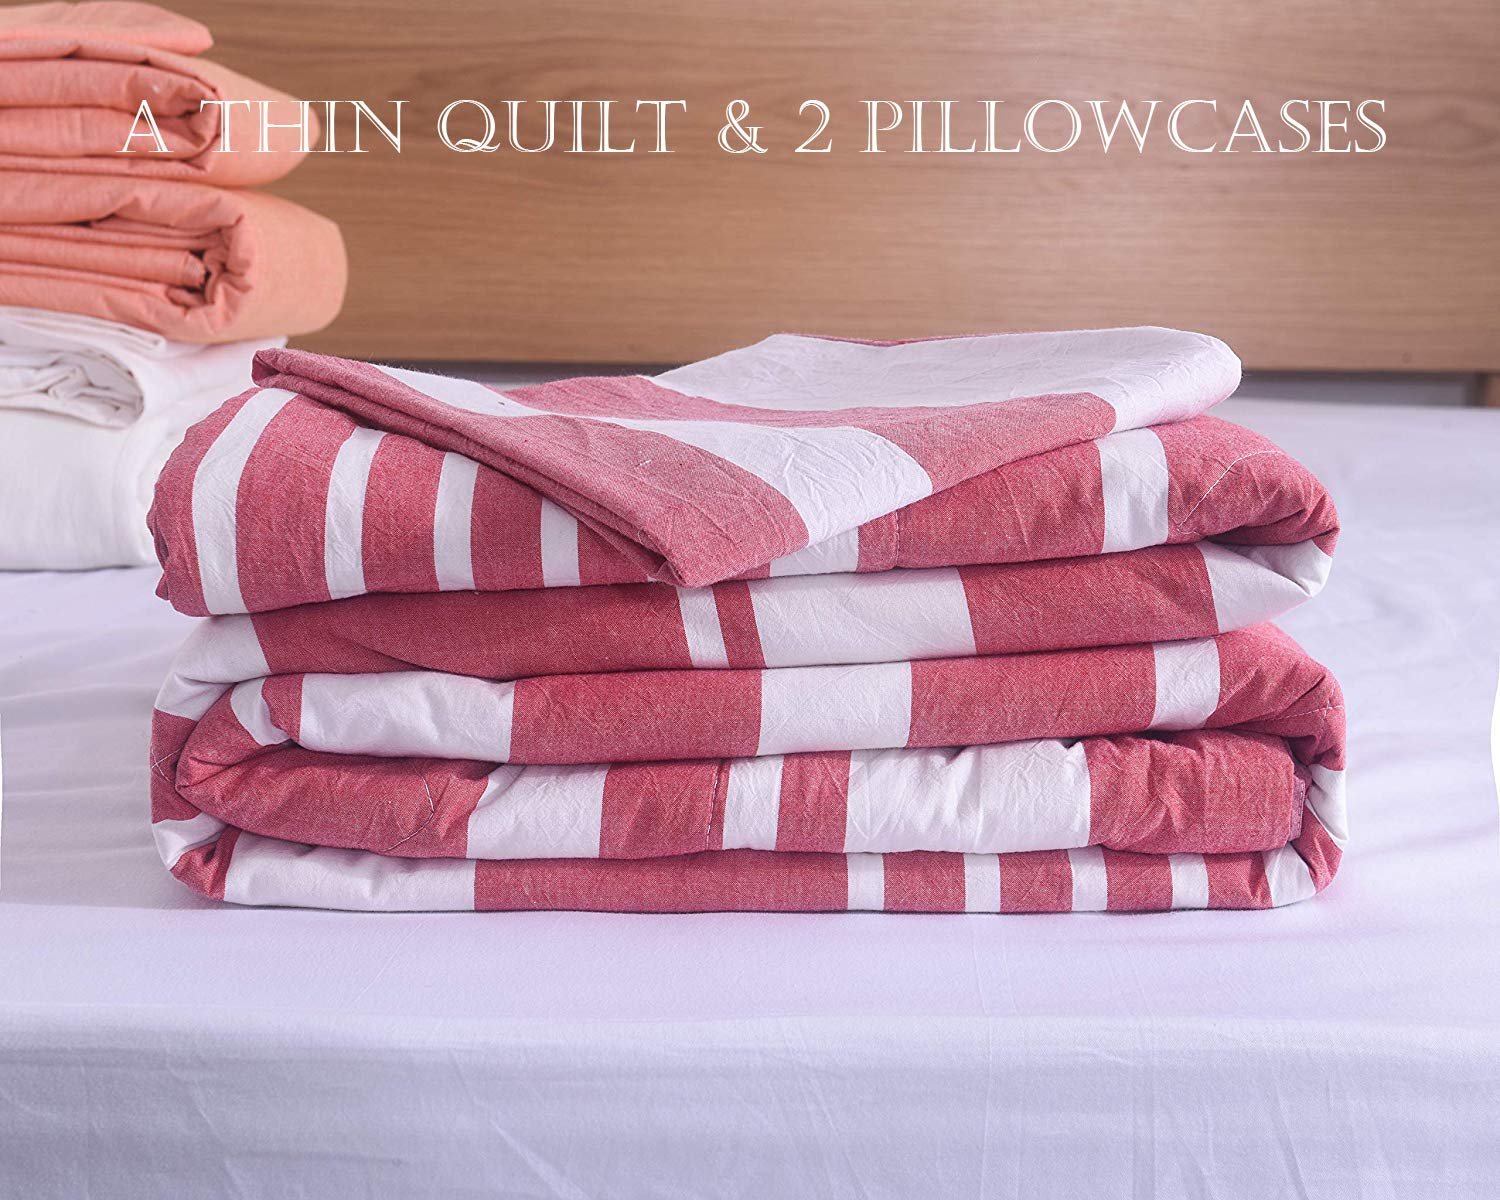 Thin Quilt Lightweight Comforter 100/% Washed Cotton Machine Washable with Sham Softer Comfy Breathable Can Sleep Naked for Summer 3 Pieces Comforter Set